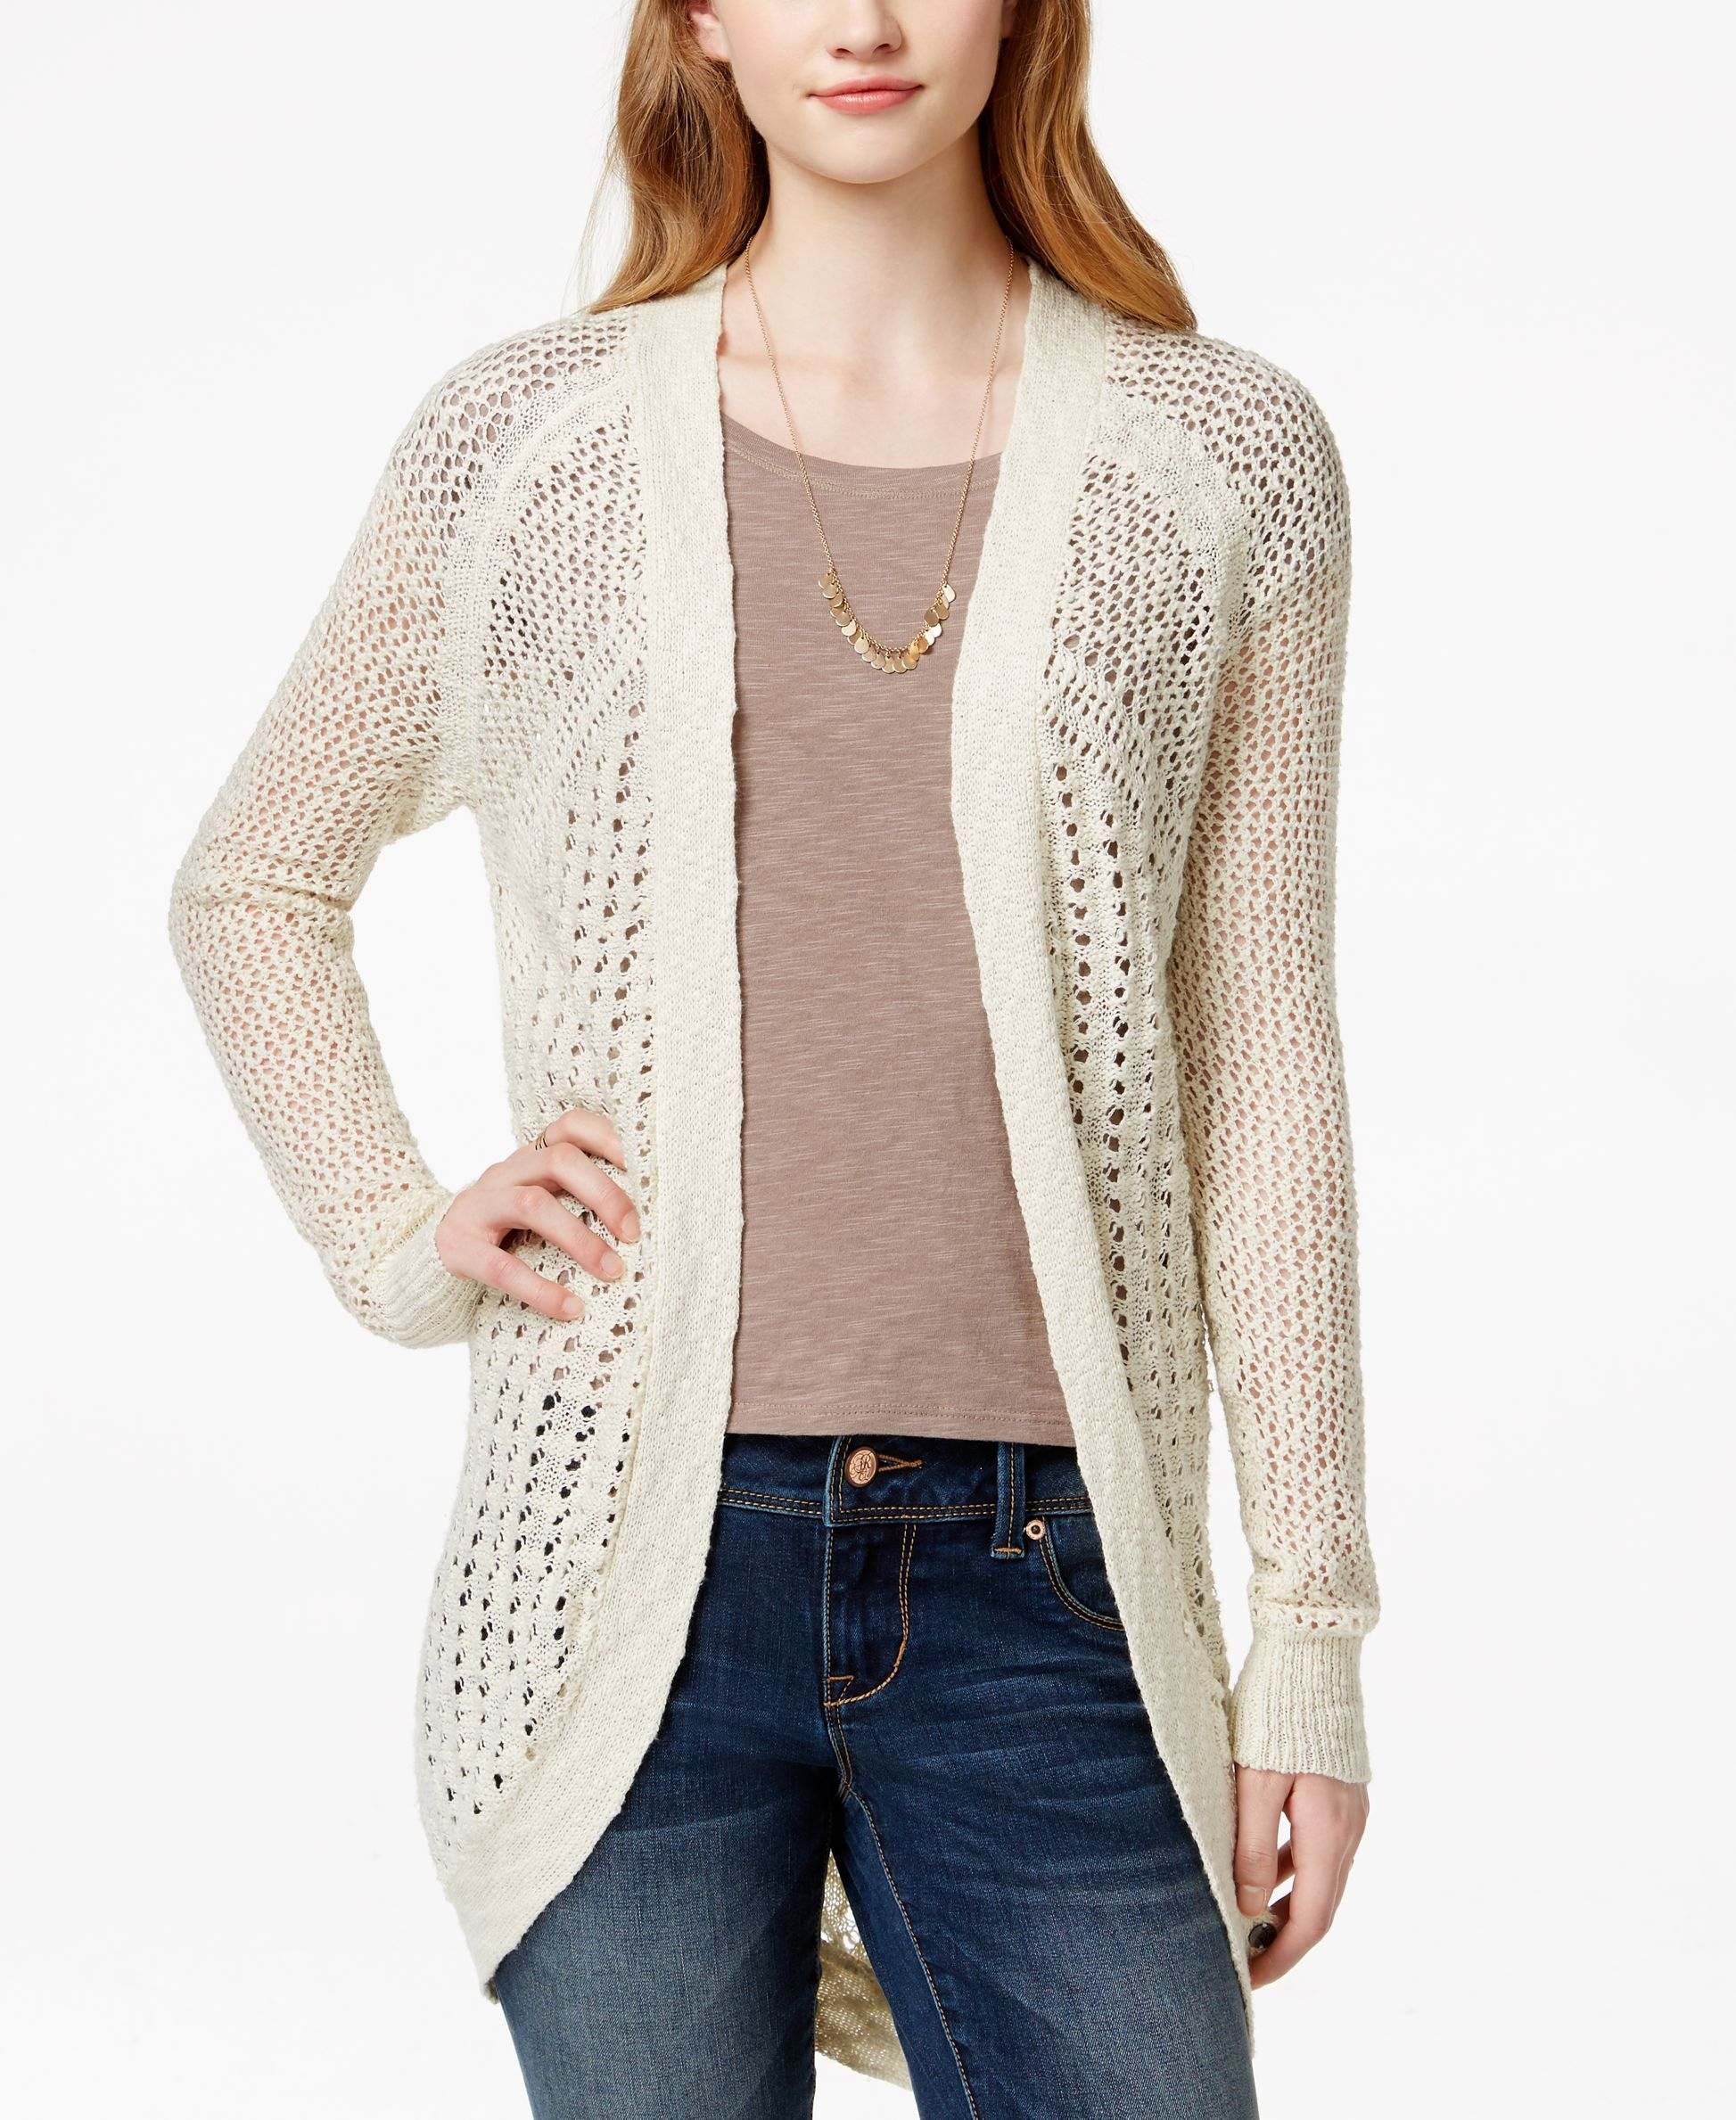 Roxy Juniors Sea Of Love Knit Cardigan Sweater